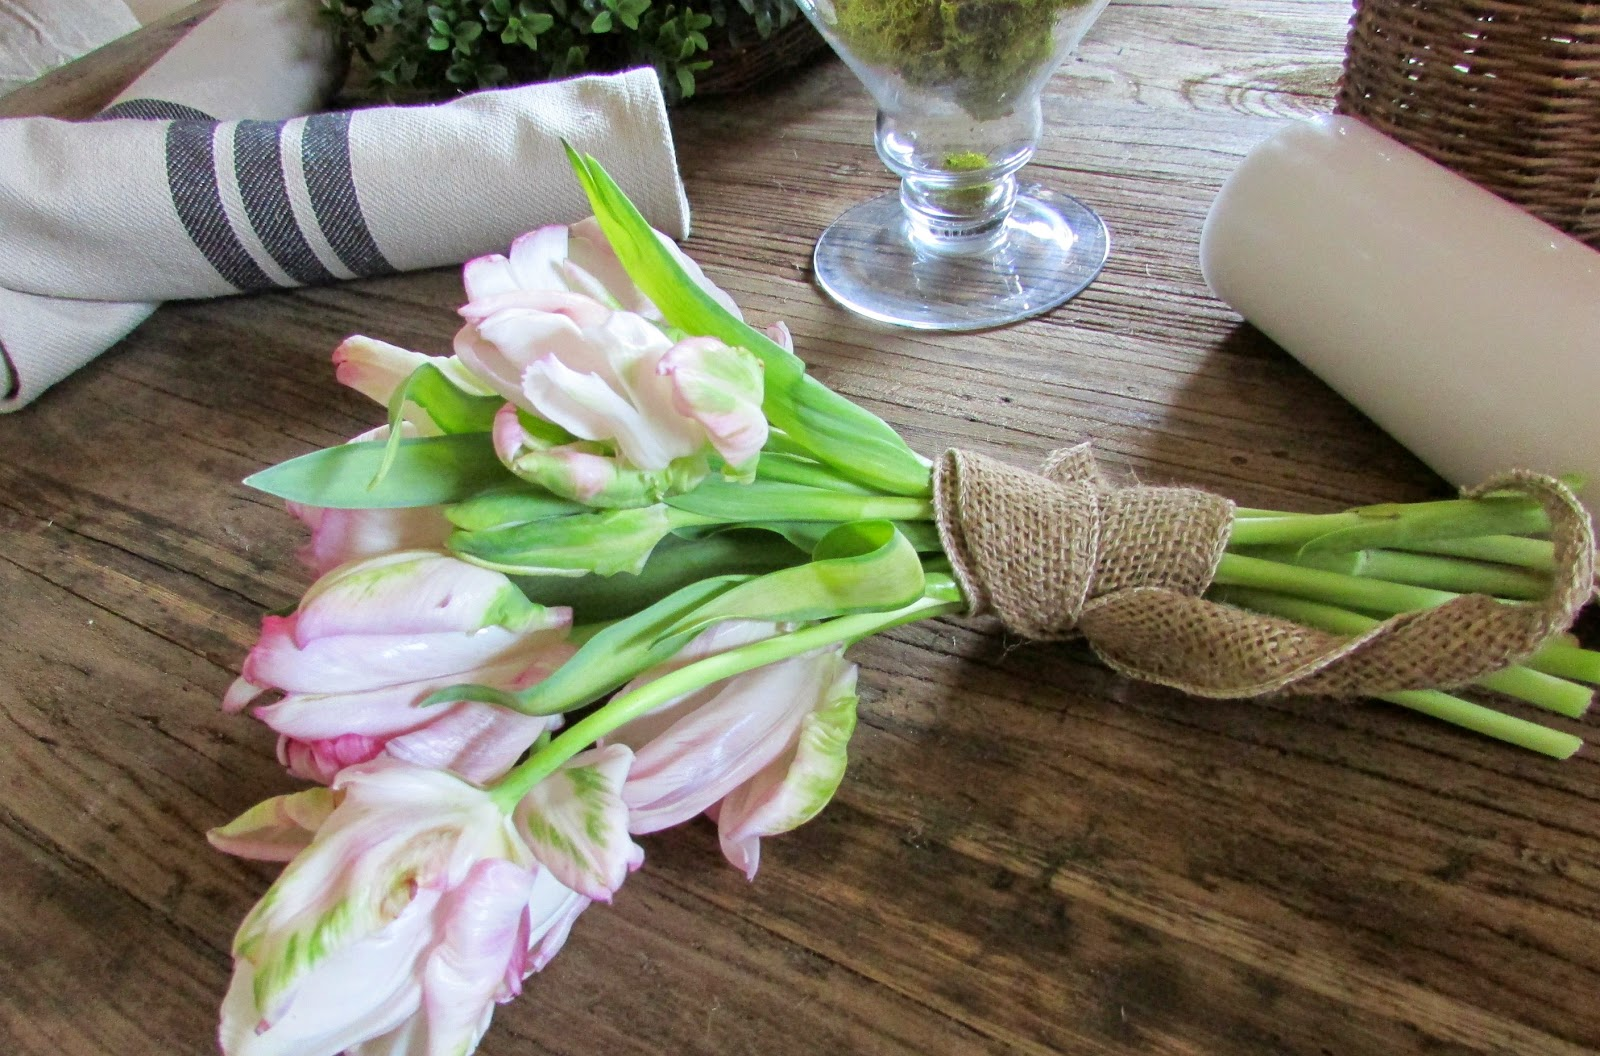 Moss, Tulips and Demi-John Centerpiece on a Rustic Table